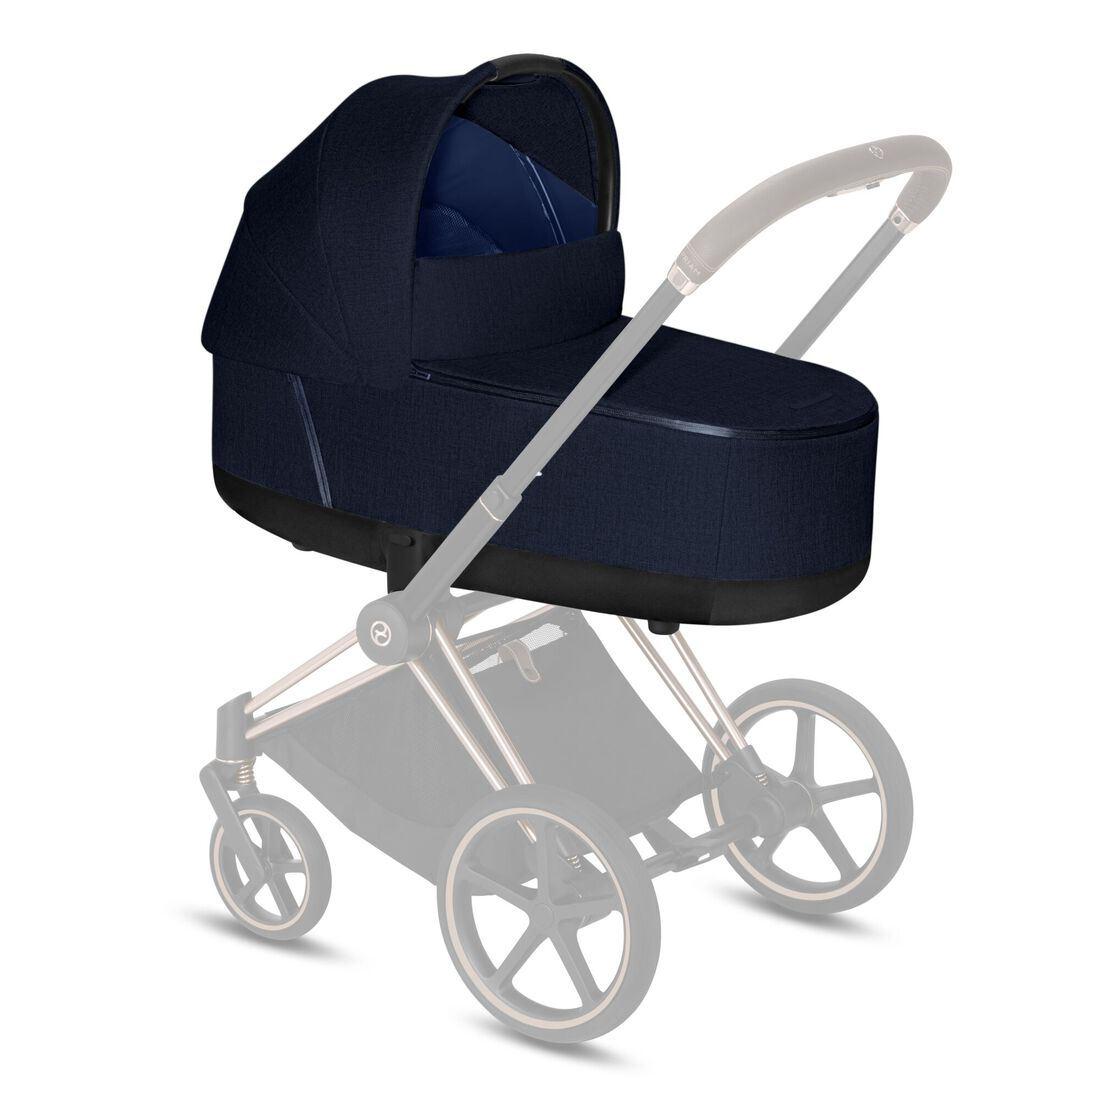 CYBEX Priam Lux Carry Cot - Midnight Blue Plus in Midnight Blue Plus large image number 2